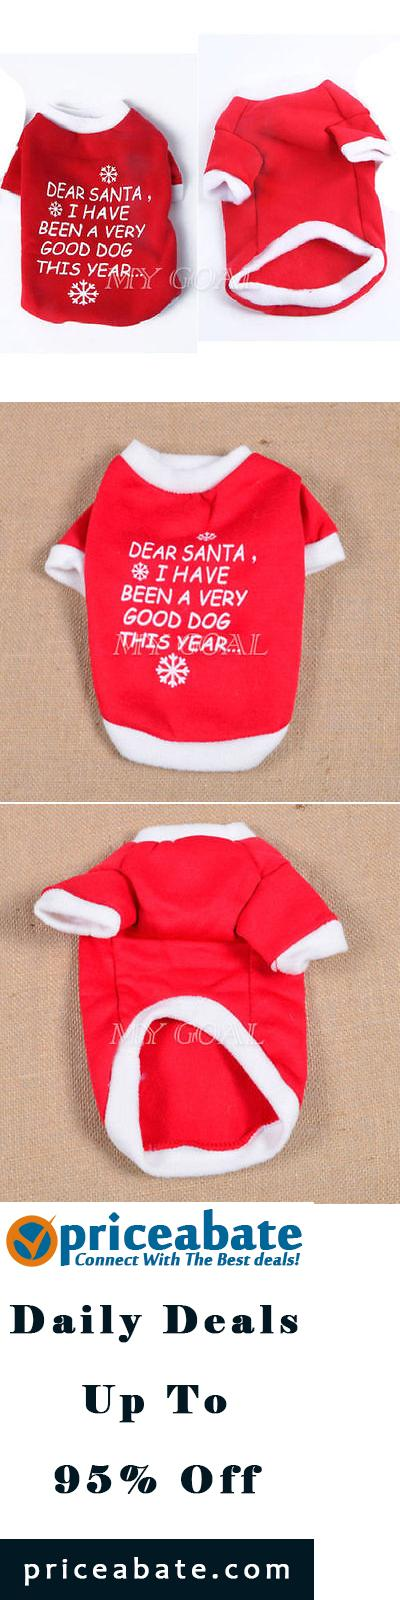 #priceabatedeals Pet Dog Cat Christmas T Shirt Vest Clothes Puppy Jacket Coat Costume Apparel - Buy This Item Now For Only: $2.58